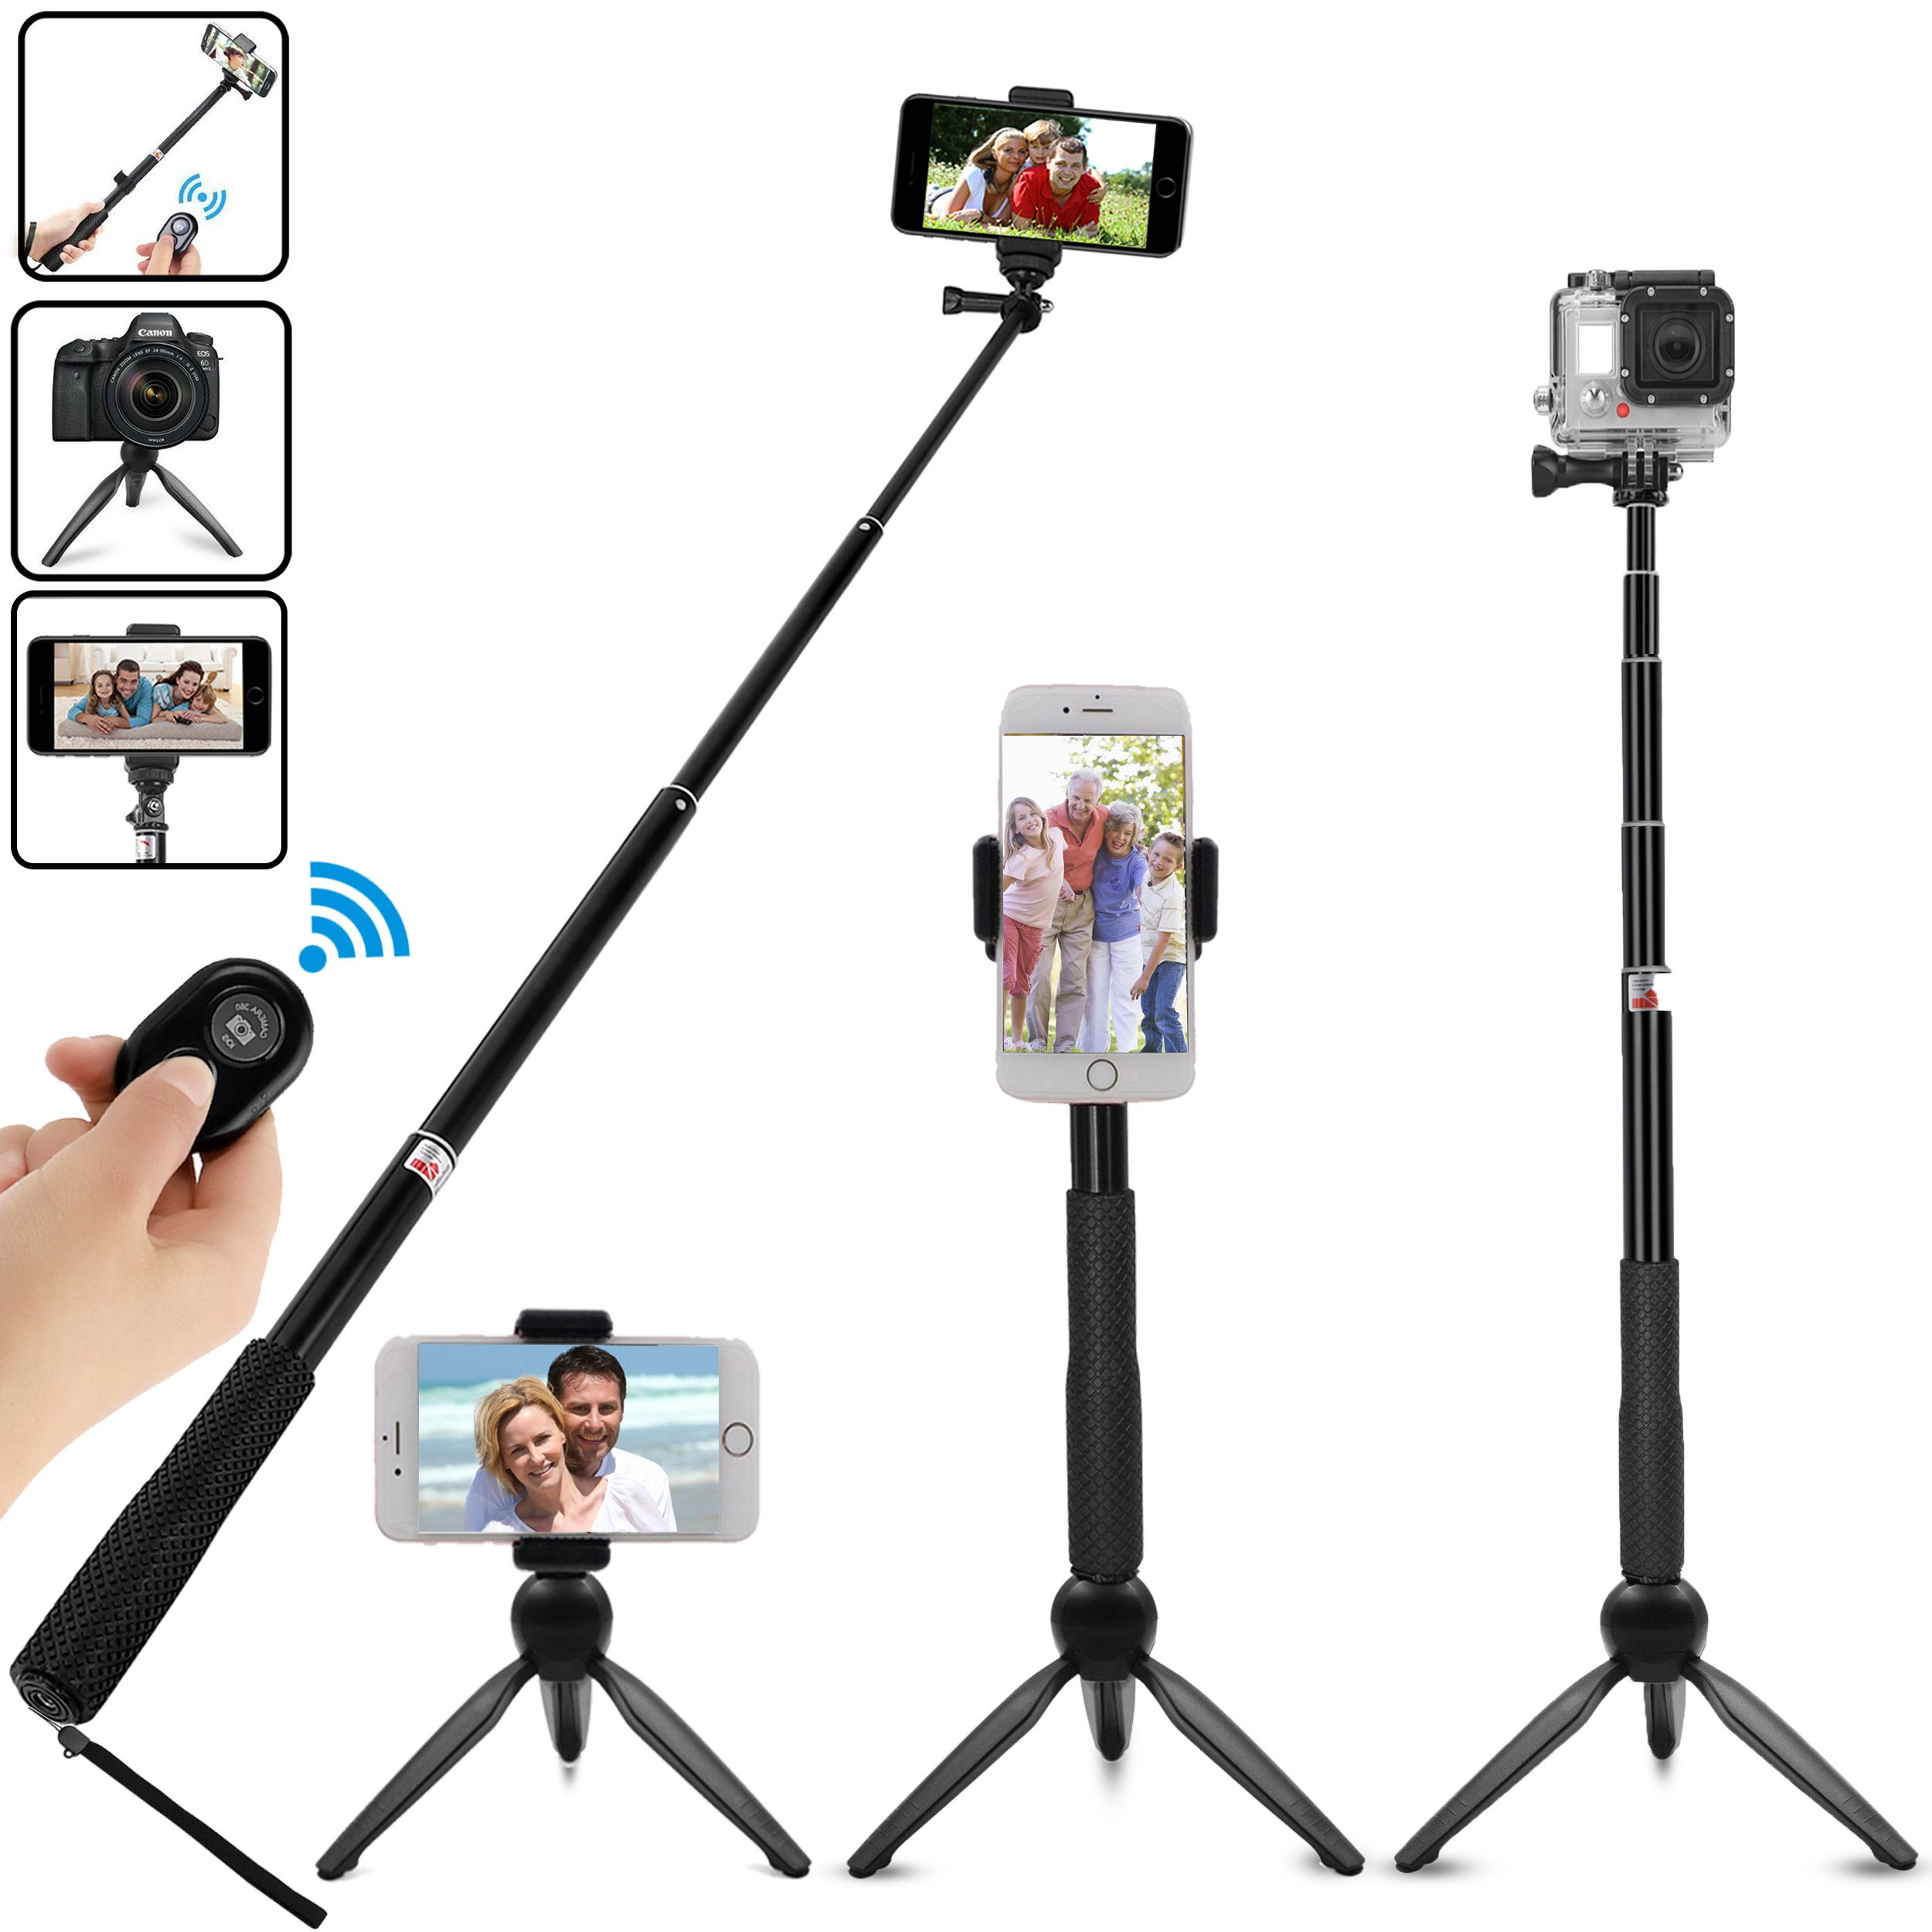 Suyisy Selfie Stick,Extendable Monopod with Integrated Tripod and Bluetooth Wireless Remote Shutter Portable for iPhone, Android phones, Digital Cameras and GoPro